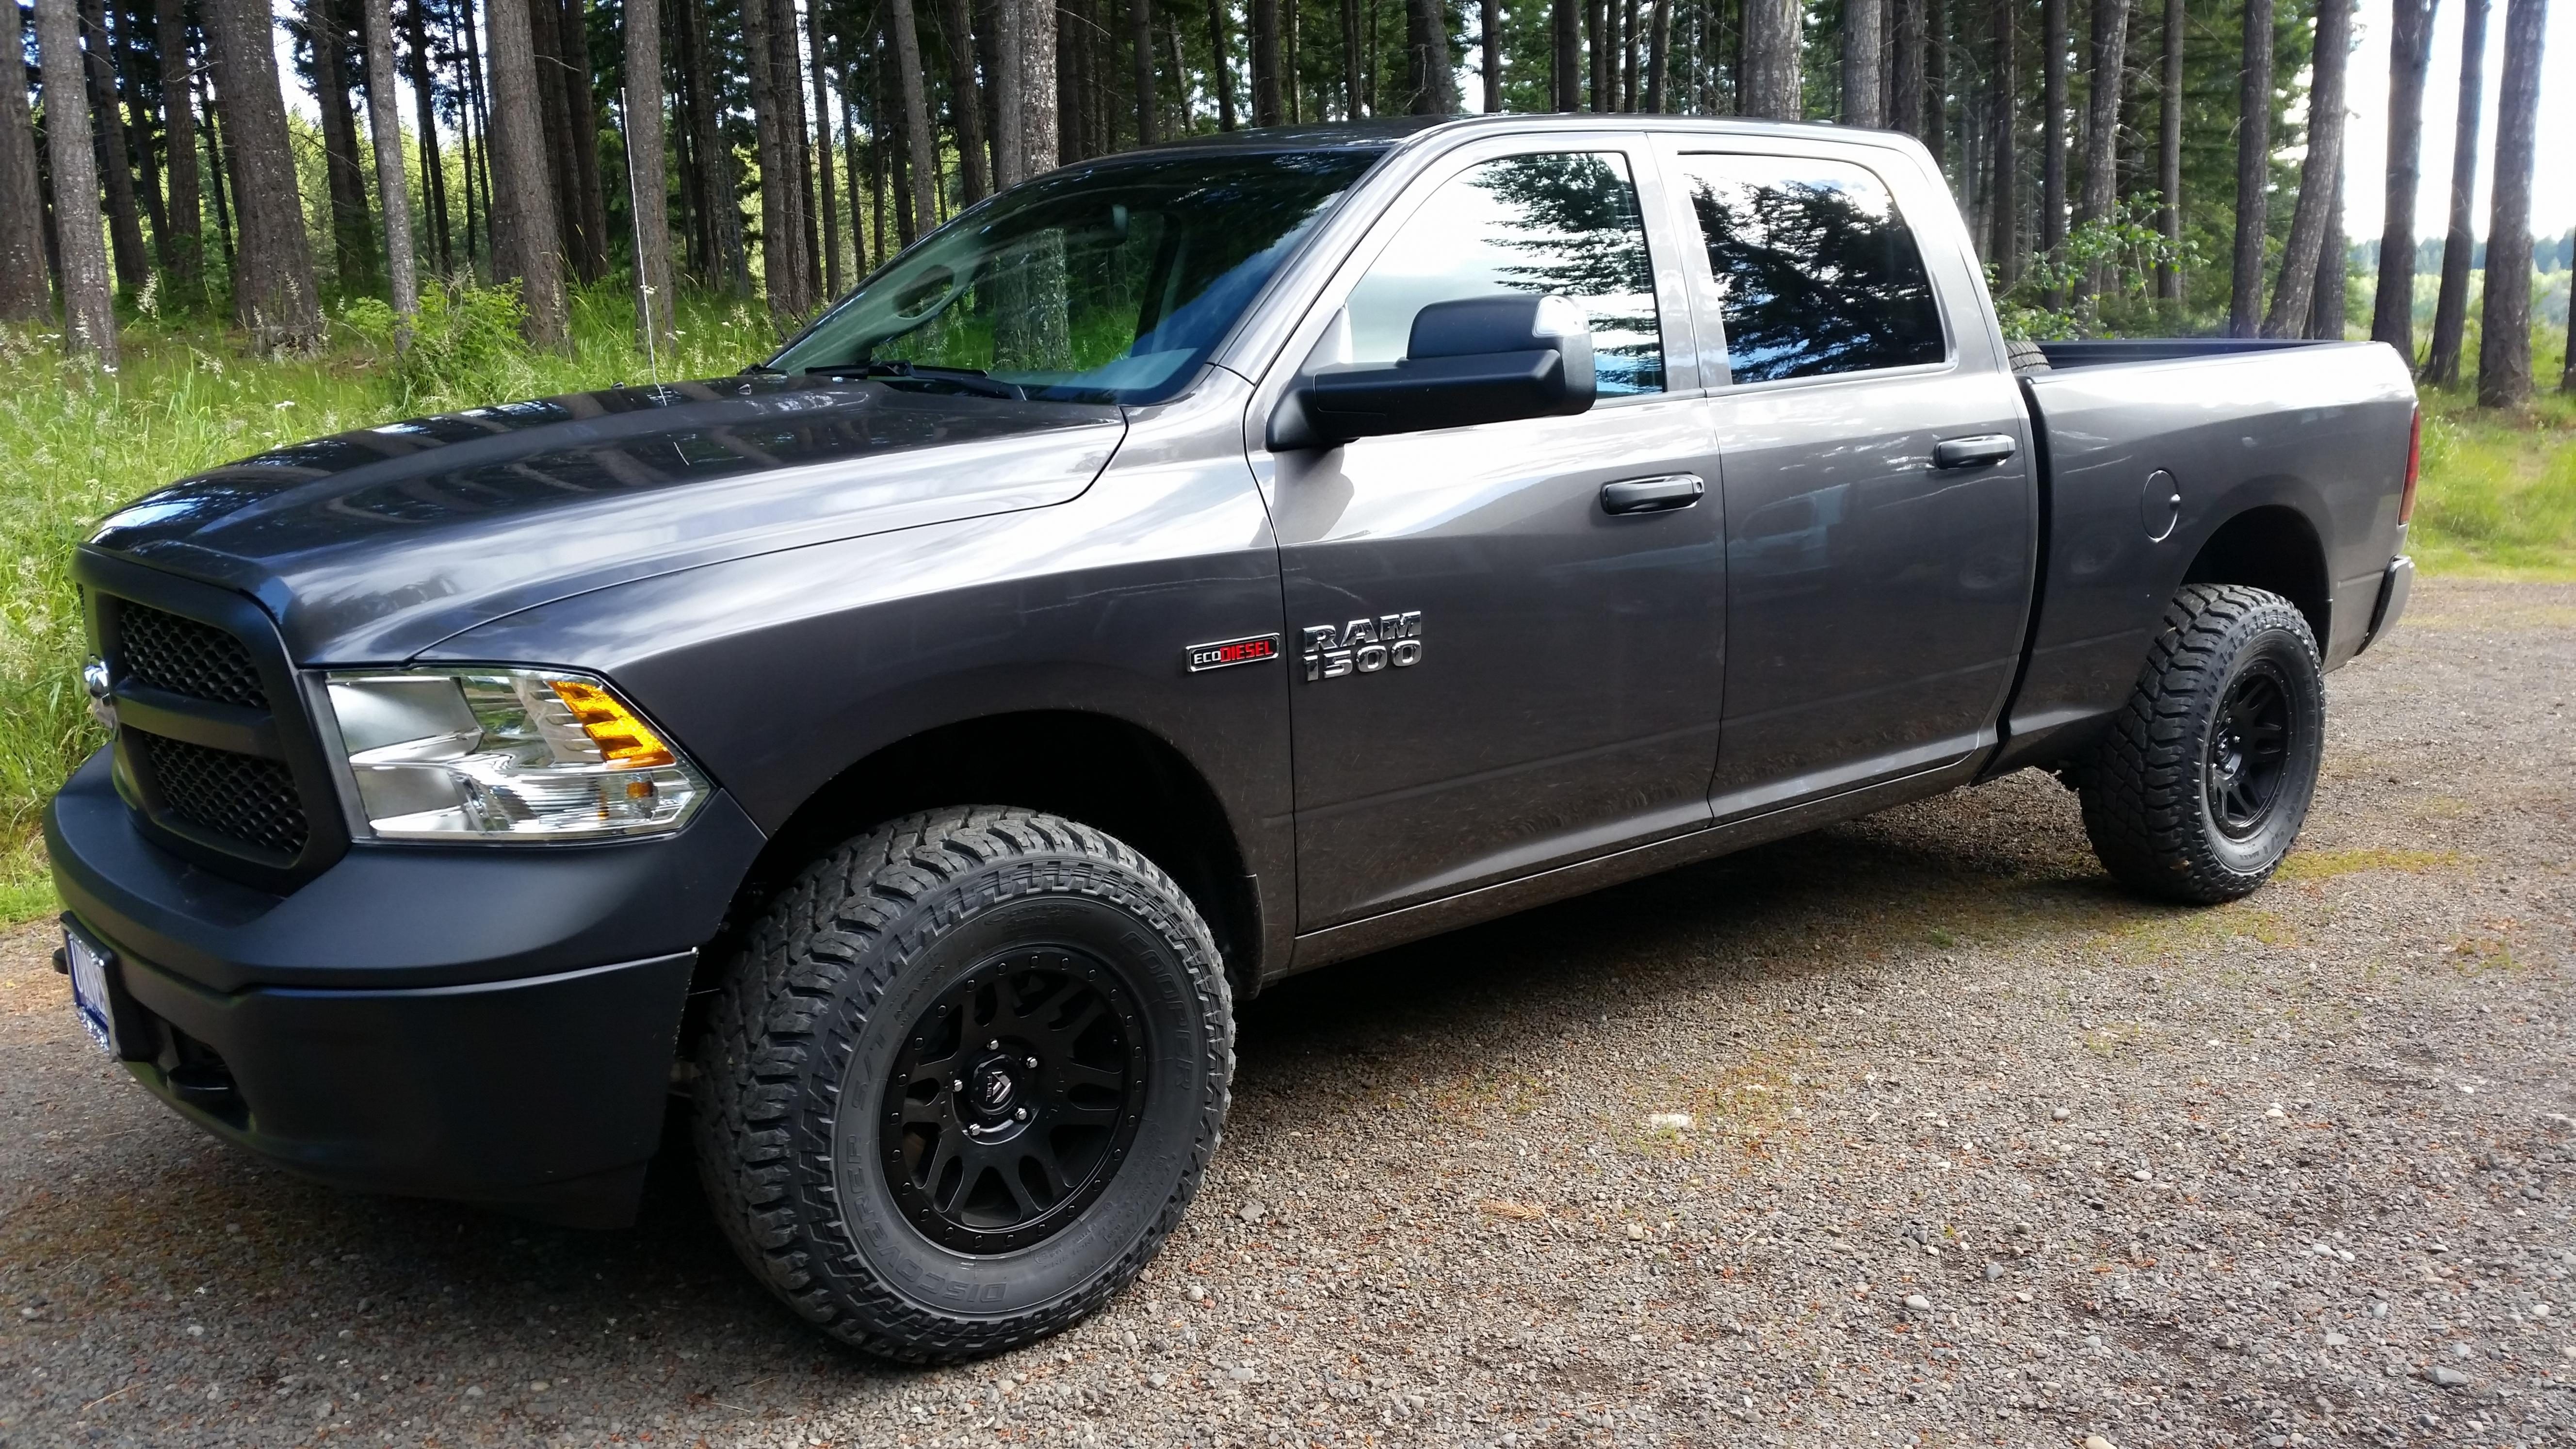 34 Inch Tires On Stock Truck With Air Suspension 2016 06 18